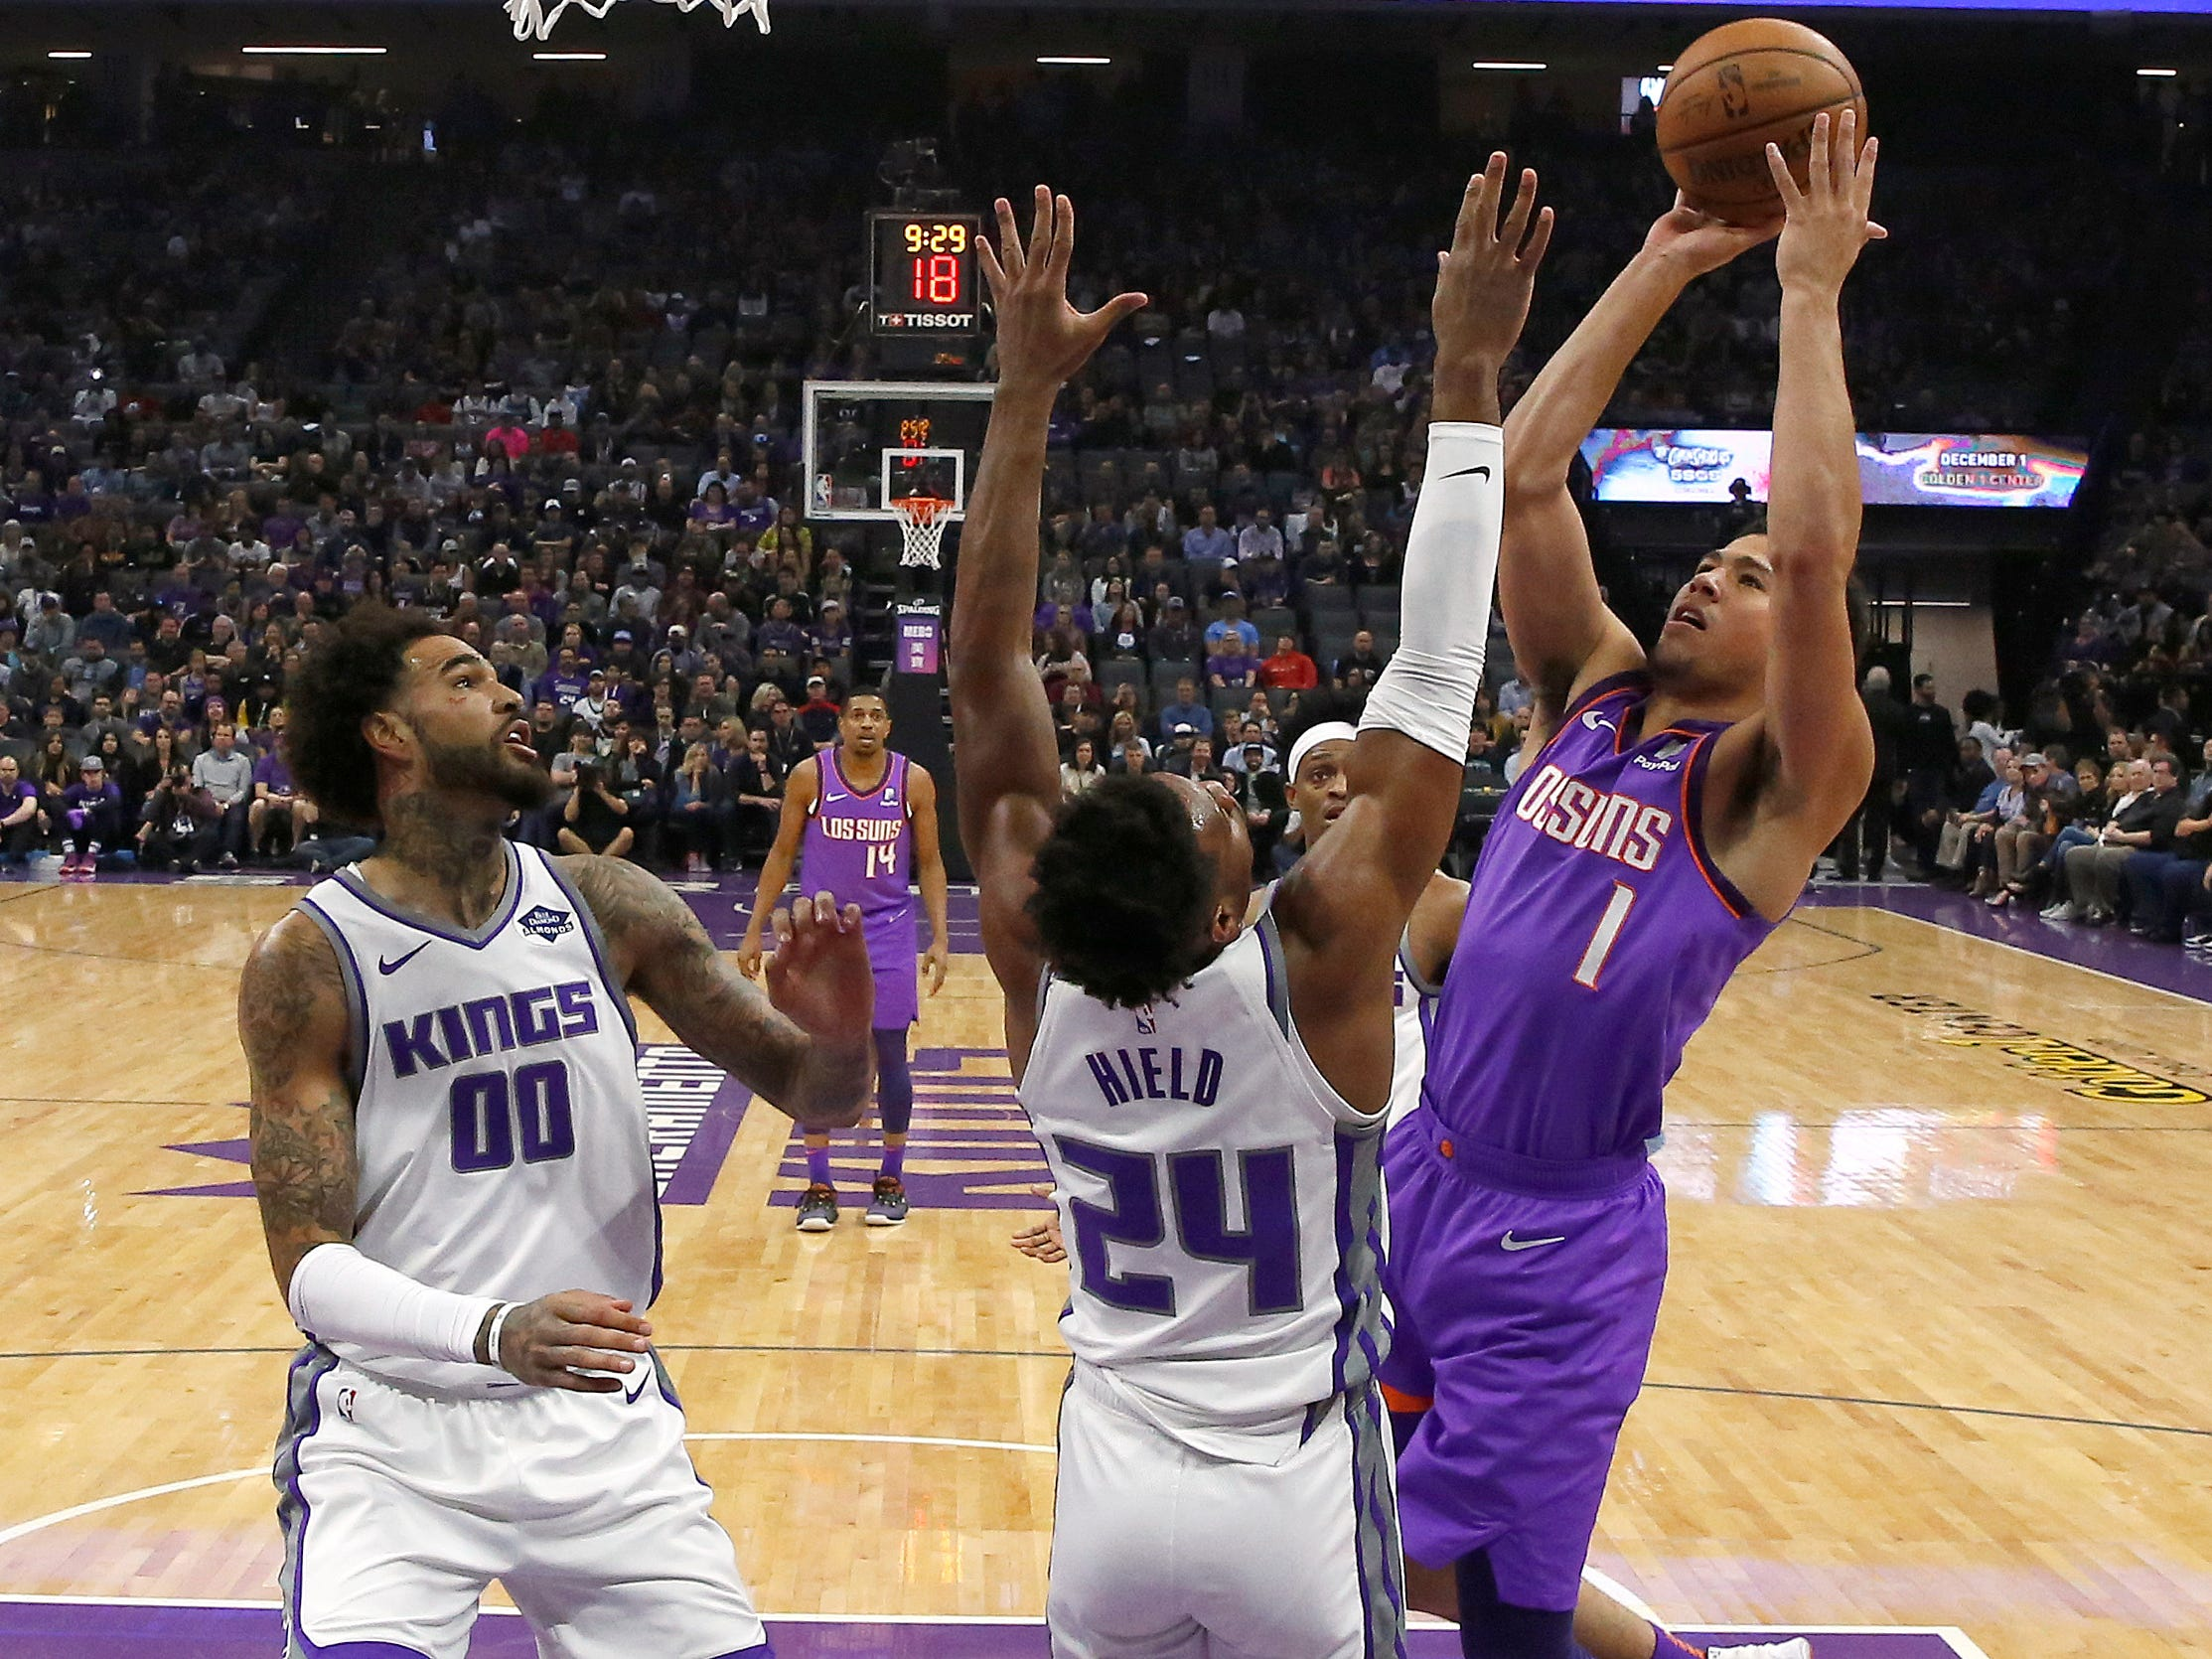 Phoenix Suns guard Devin Booker, right, goes up for the shot against Sacramento Kings guard Buddy Hield, center, as Kings center Willie Cauley-Stein, left, watches during the first quarter of an NBA basketball game Saturday, March 23, 2019, in Sacramento, Calif.